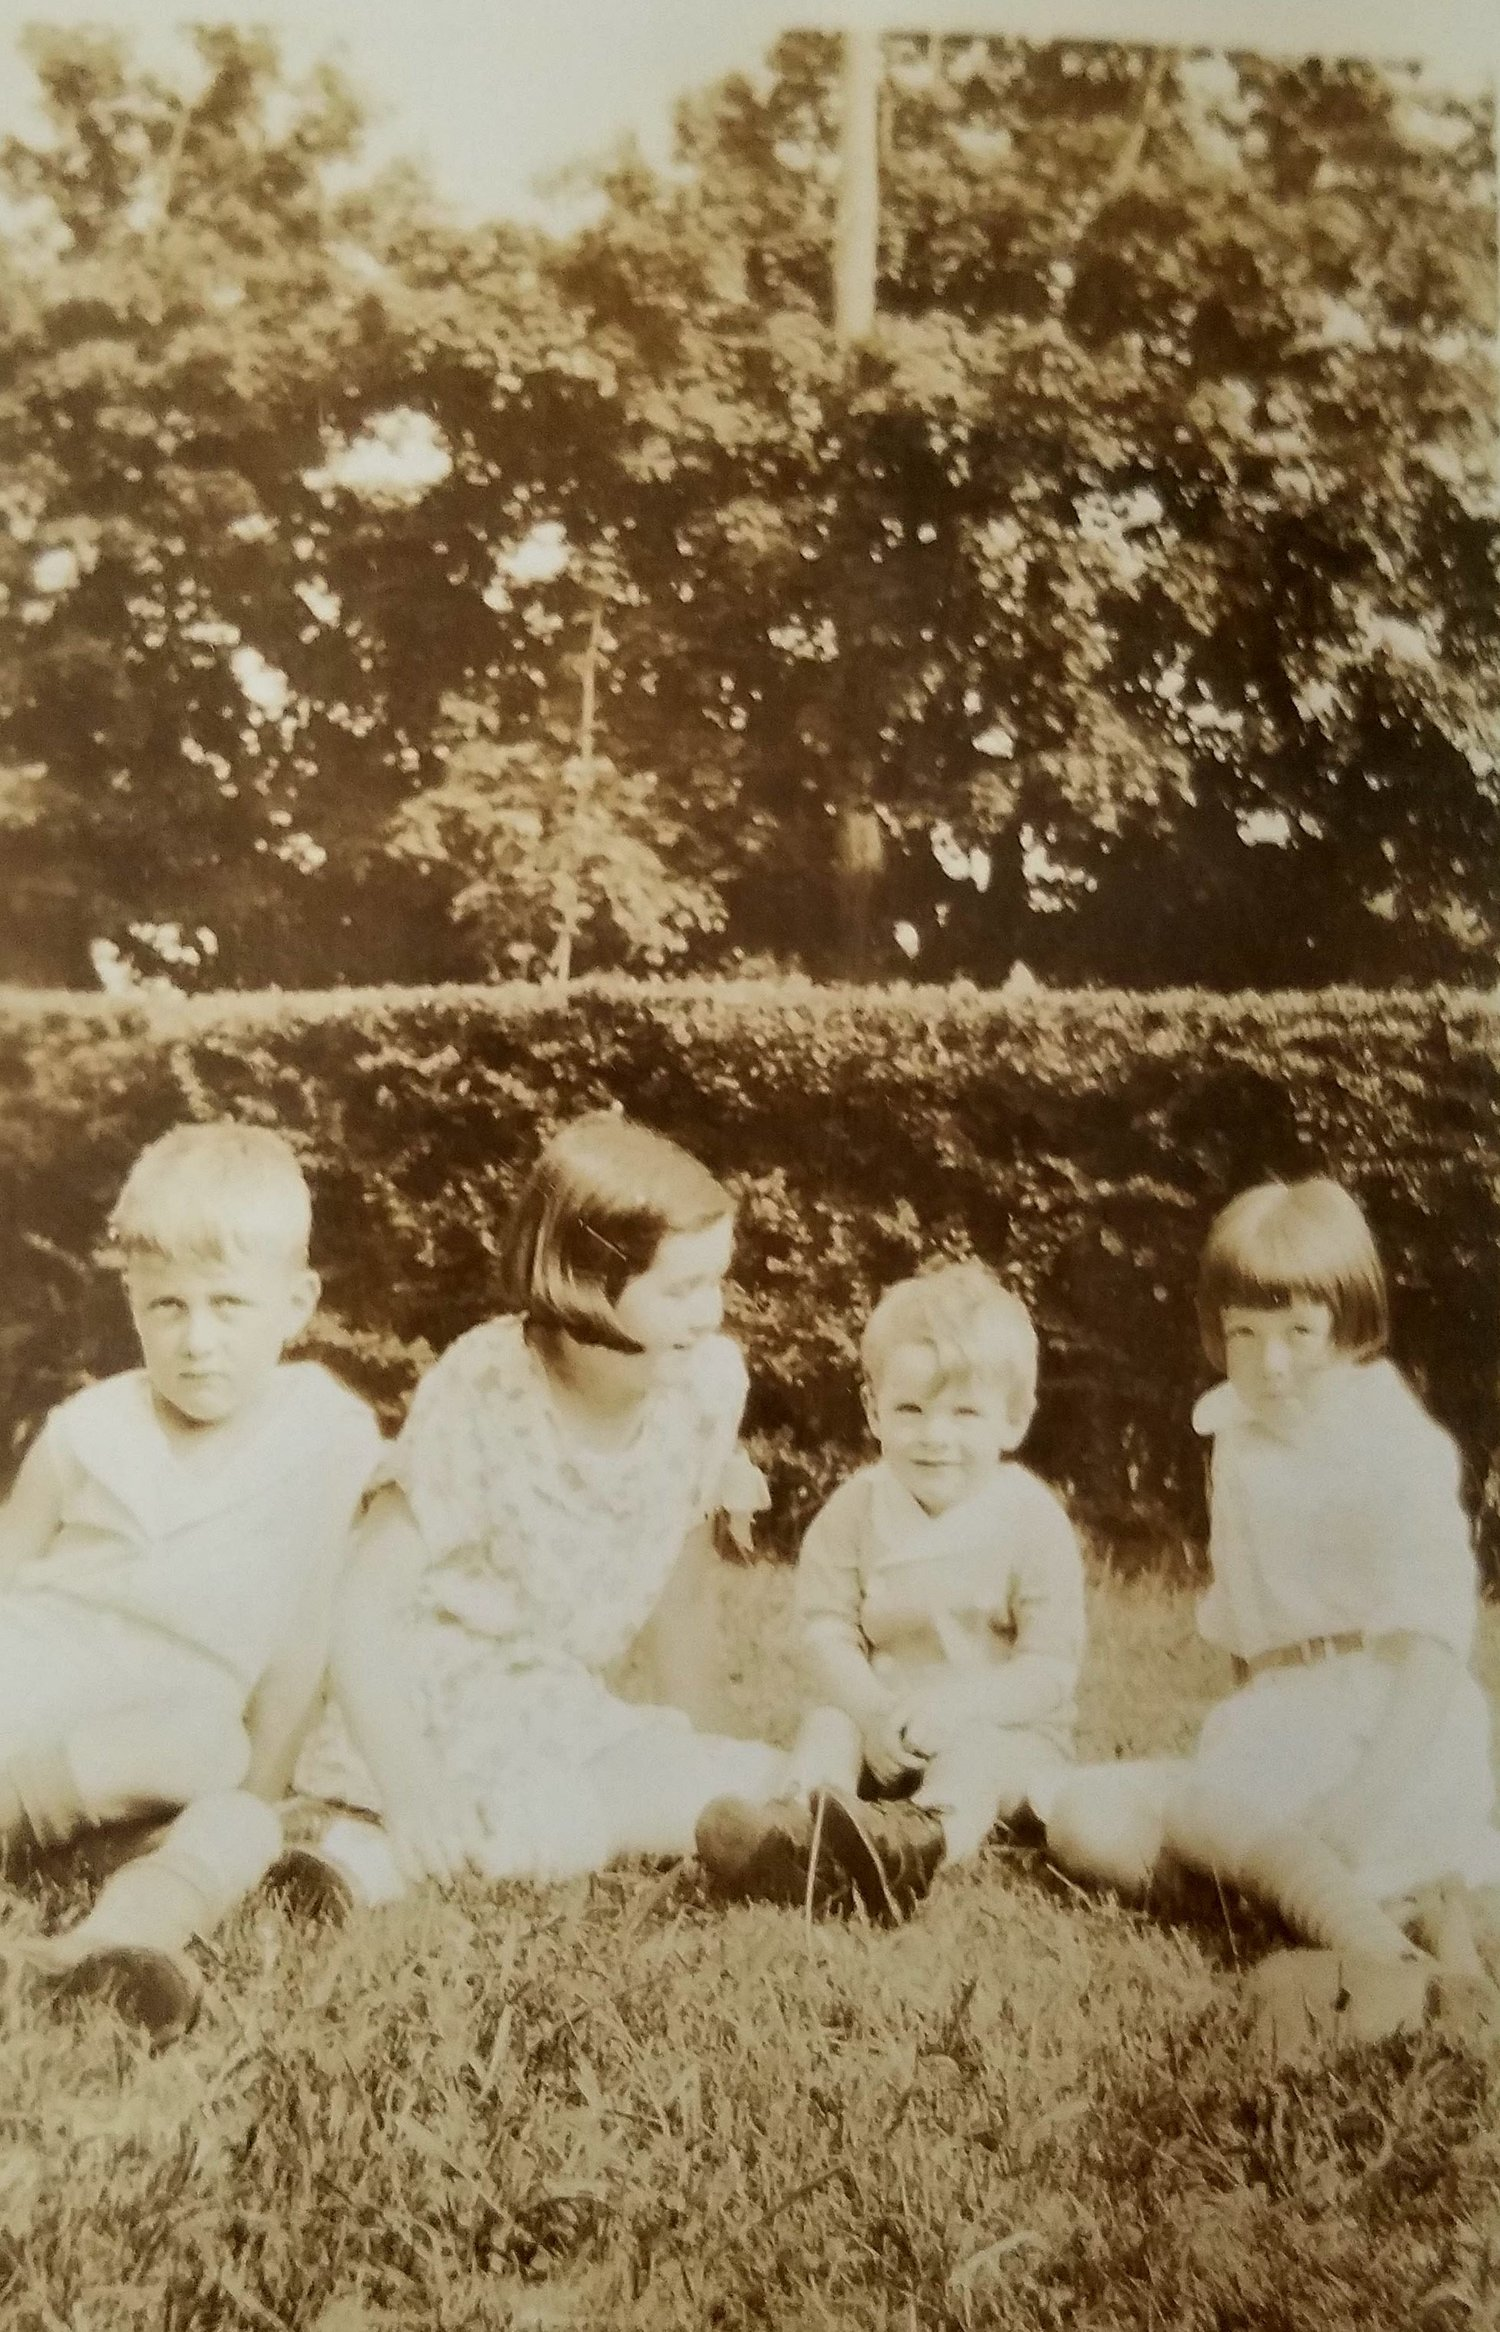 Jane McLaughlin Walsh (second from left) remembered standing in her yard with her siblings watching the Hurricane of 1938 tumble trees around them. (Courtesy Mary Collins)